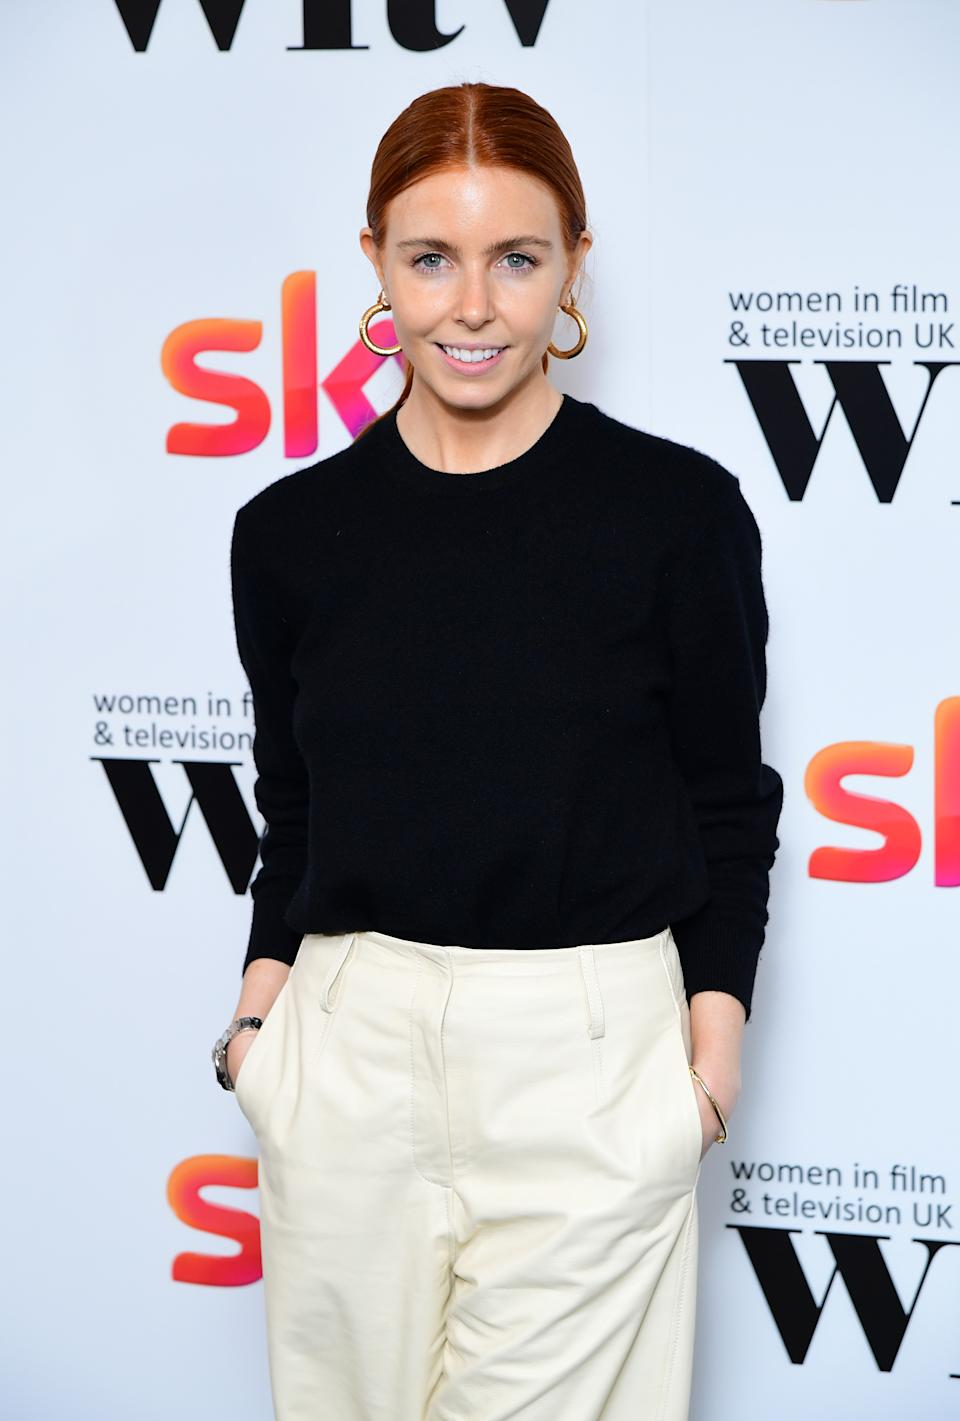 Stacey Dooley in the press room at the Women in Film and TV Awards 2019 at the Hilton, Park Lane, London.